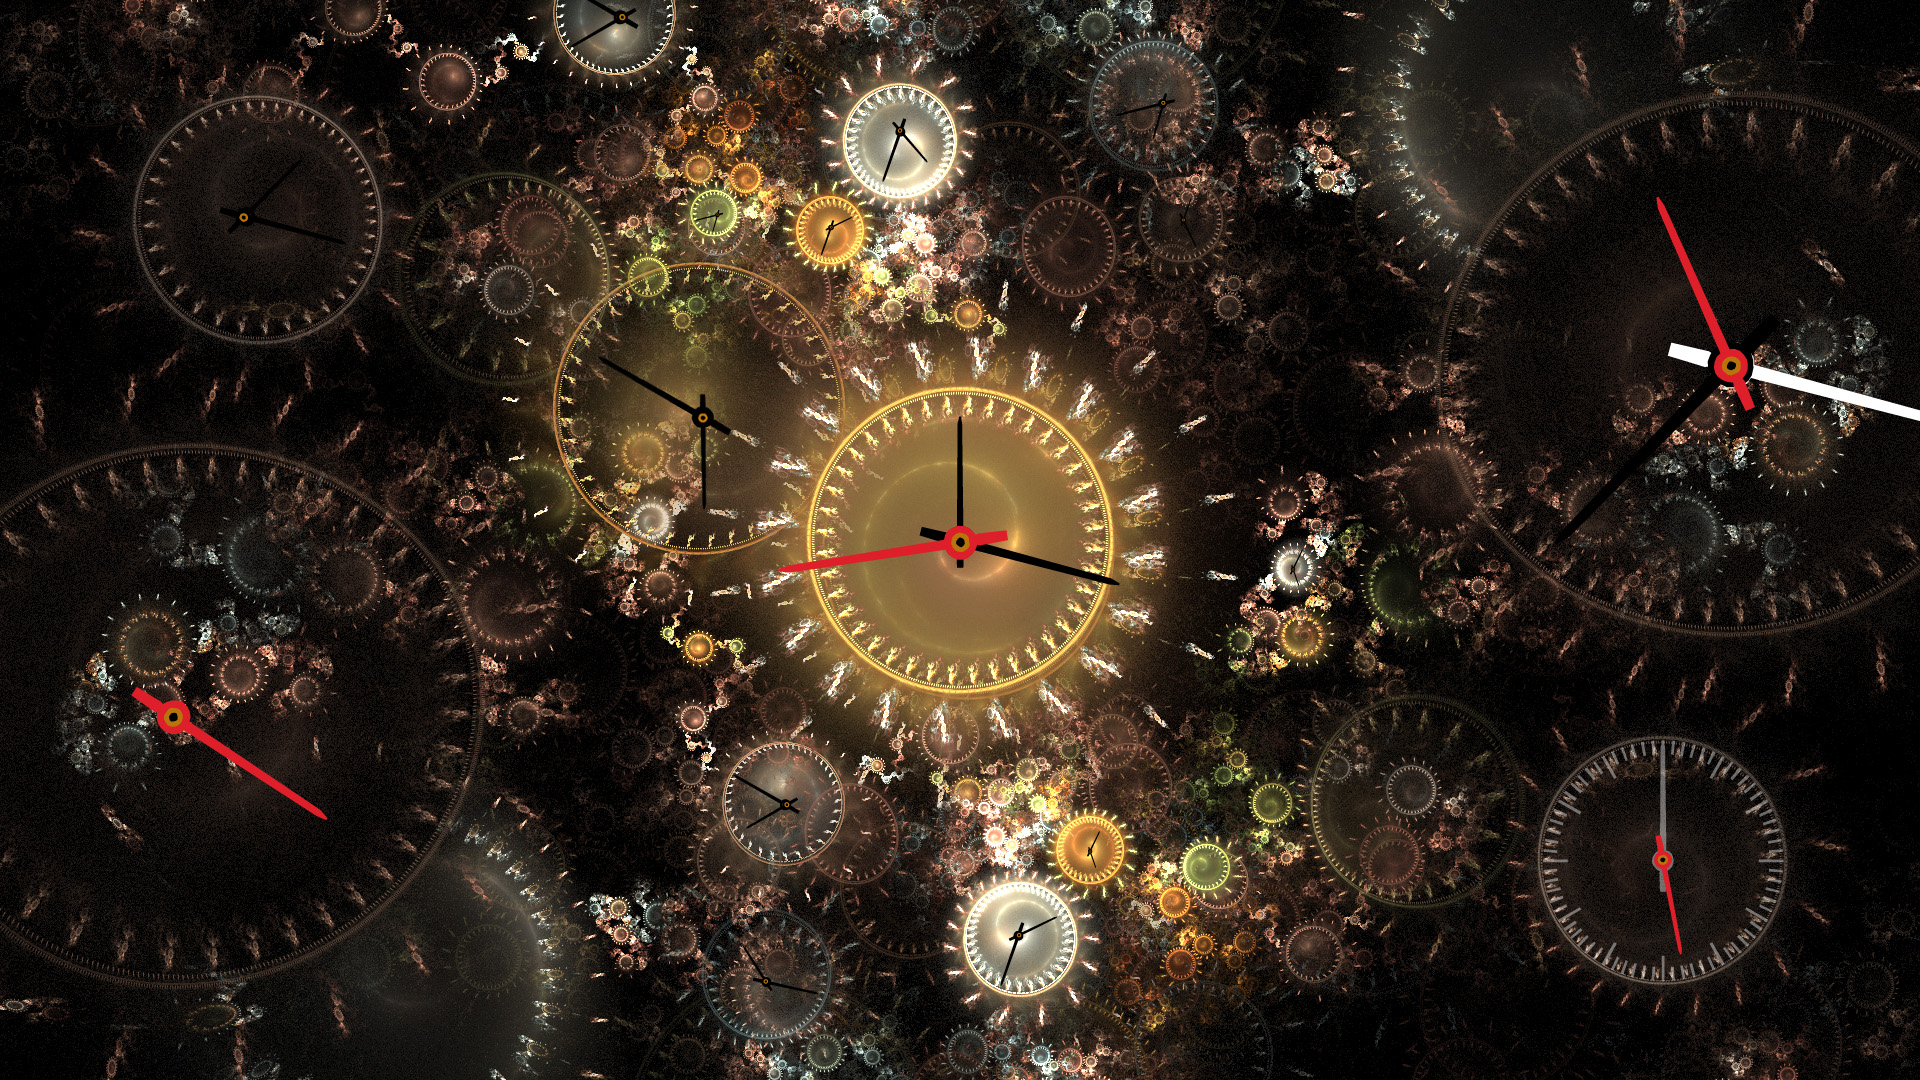 fractal clock on wikimedia commons